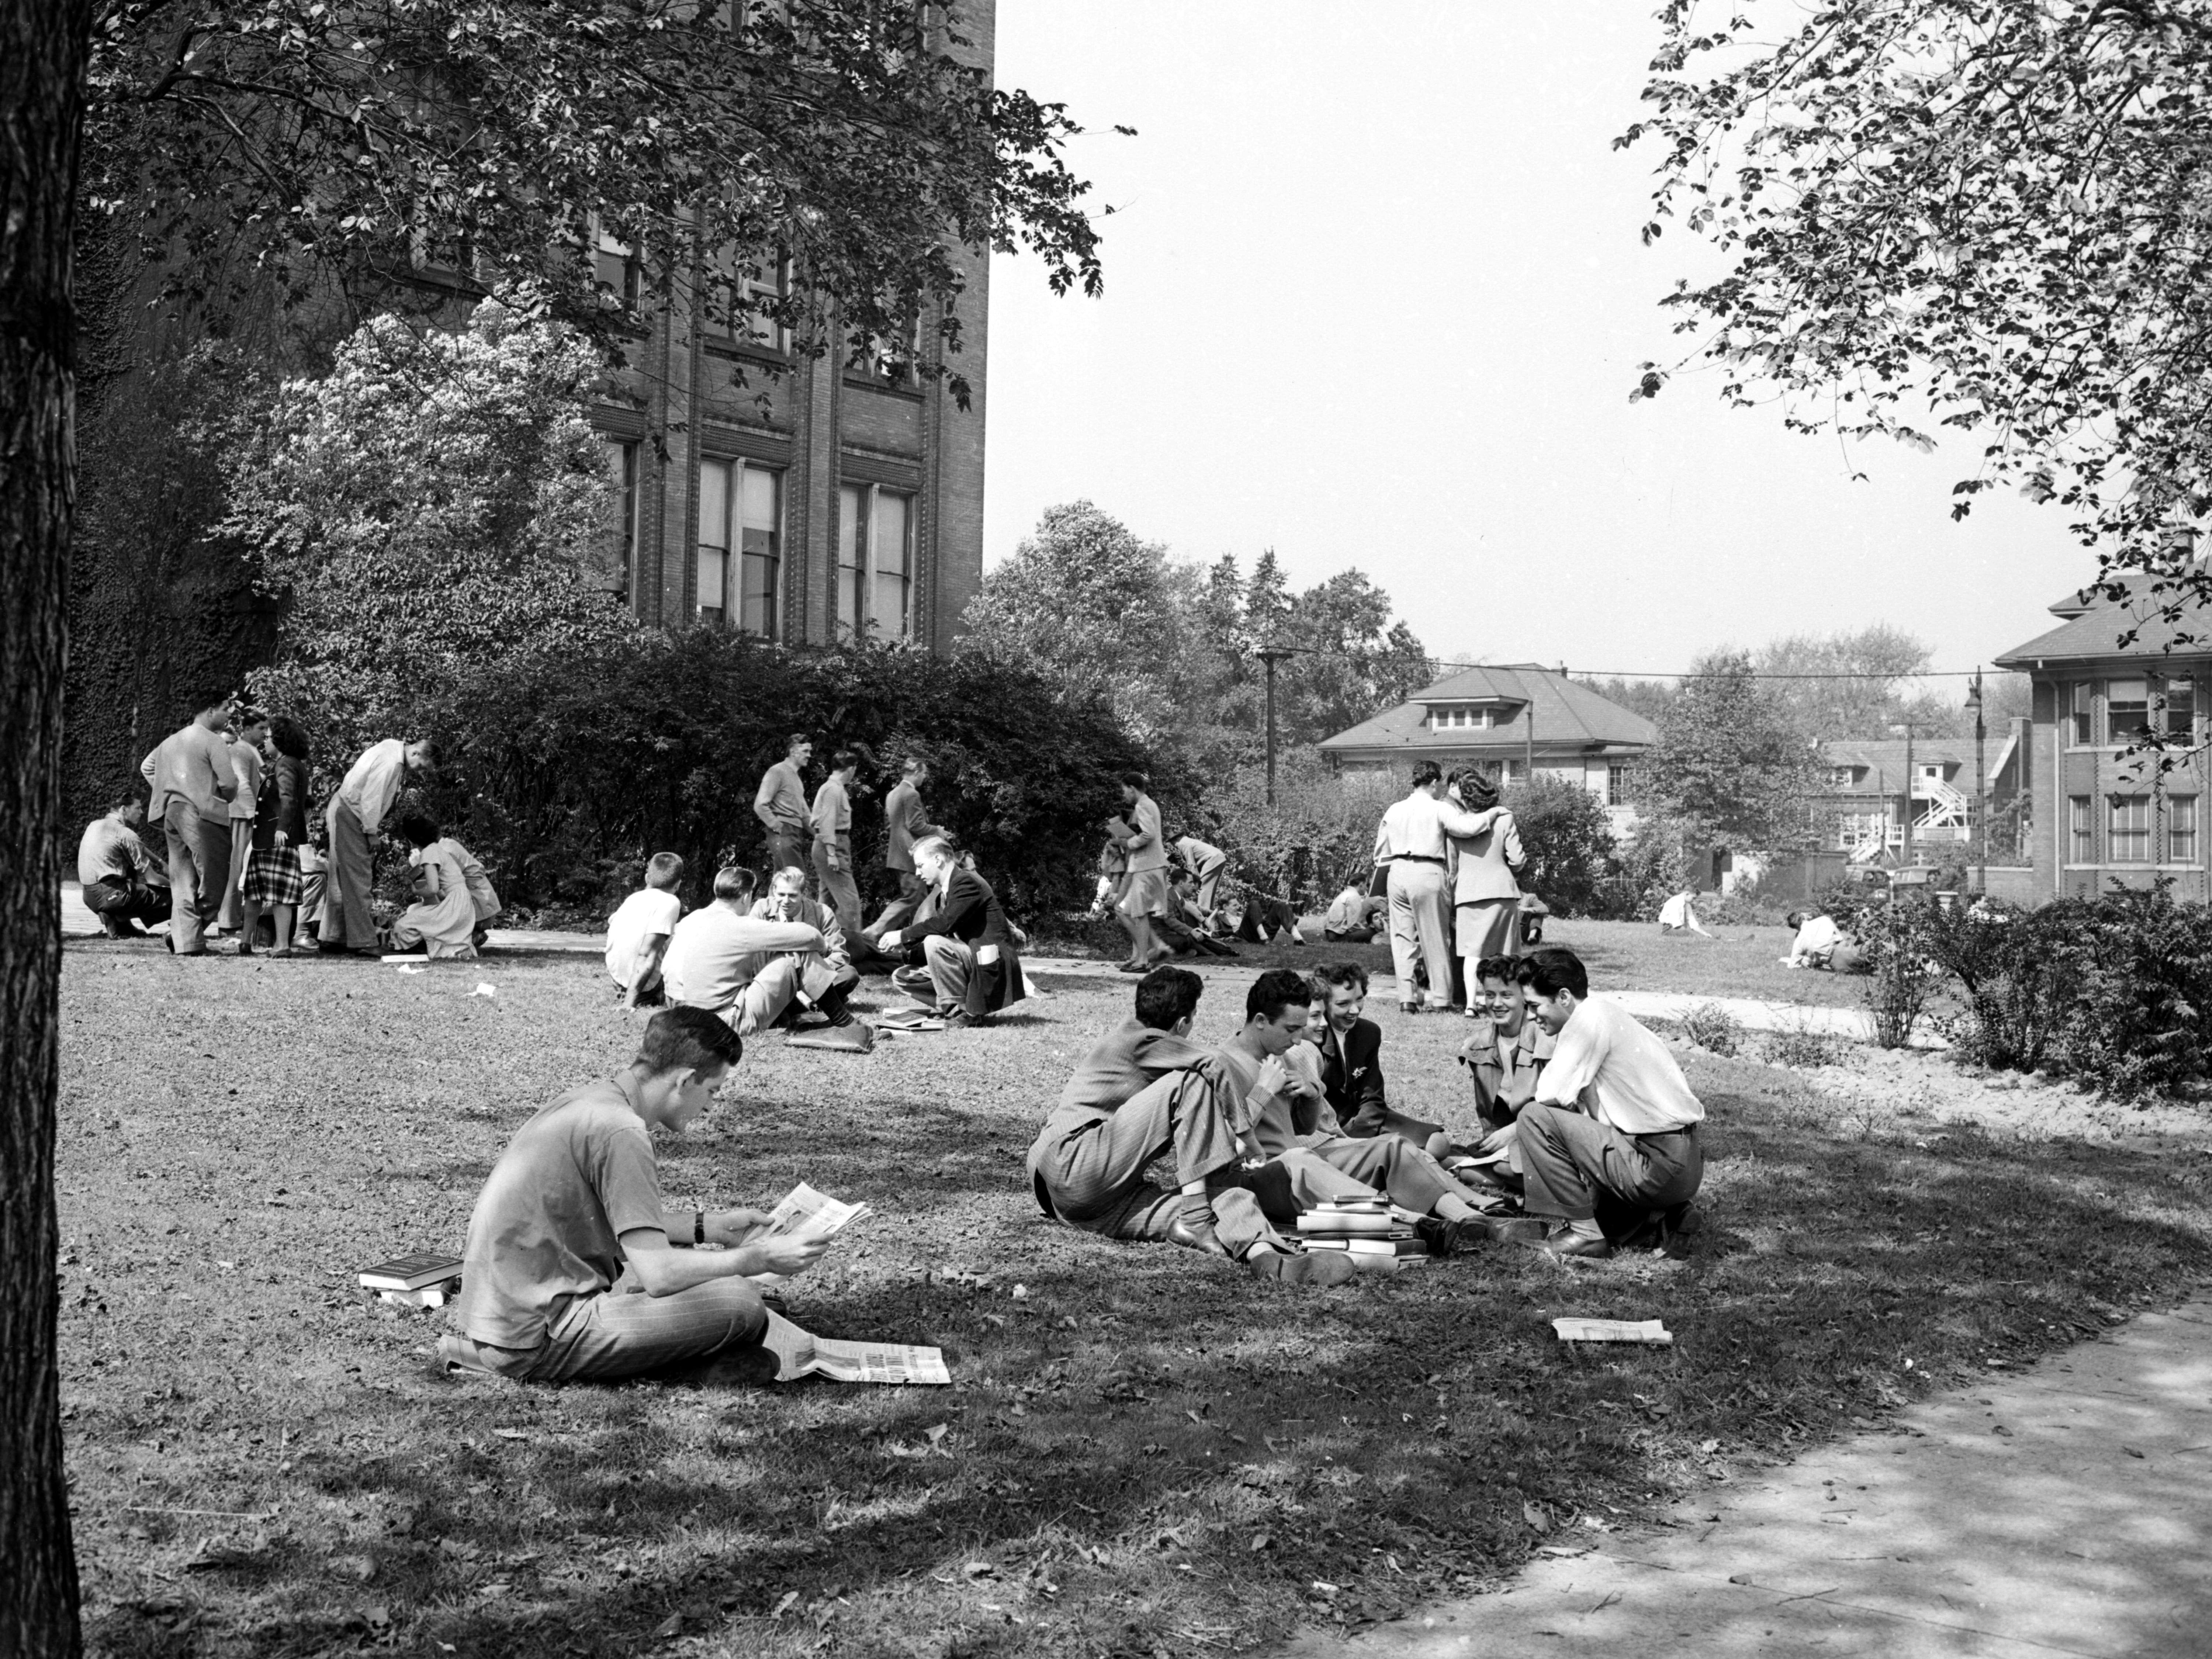 Wayne University students relax on the lawn in Detroit on Aug. 27, 1944. The institution was renamed Wayne State University in 1956.